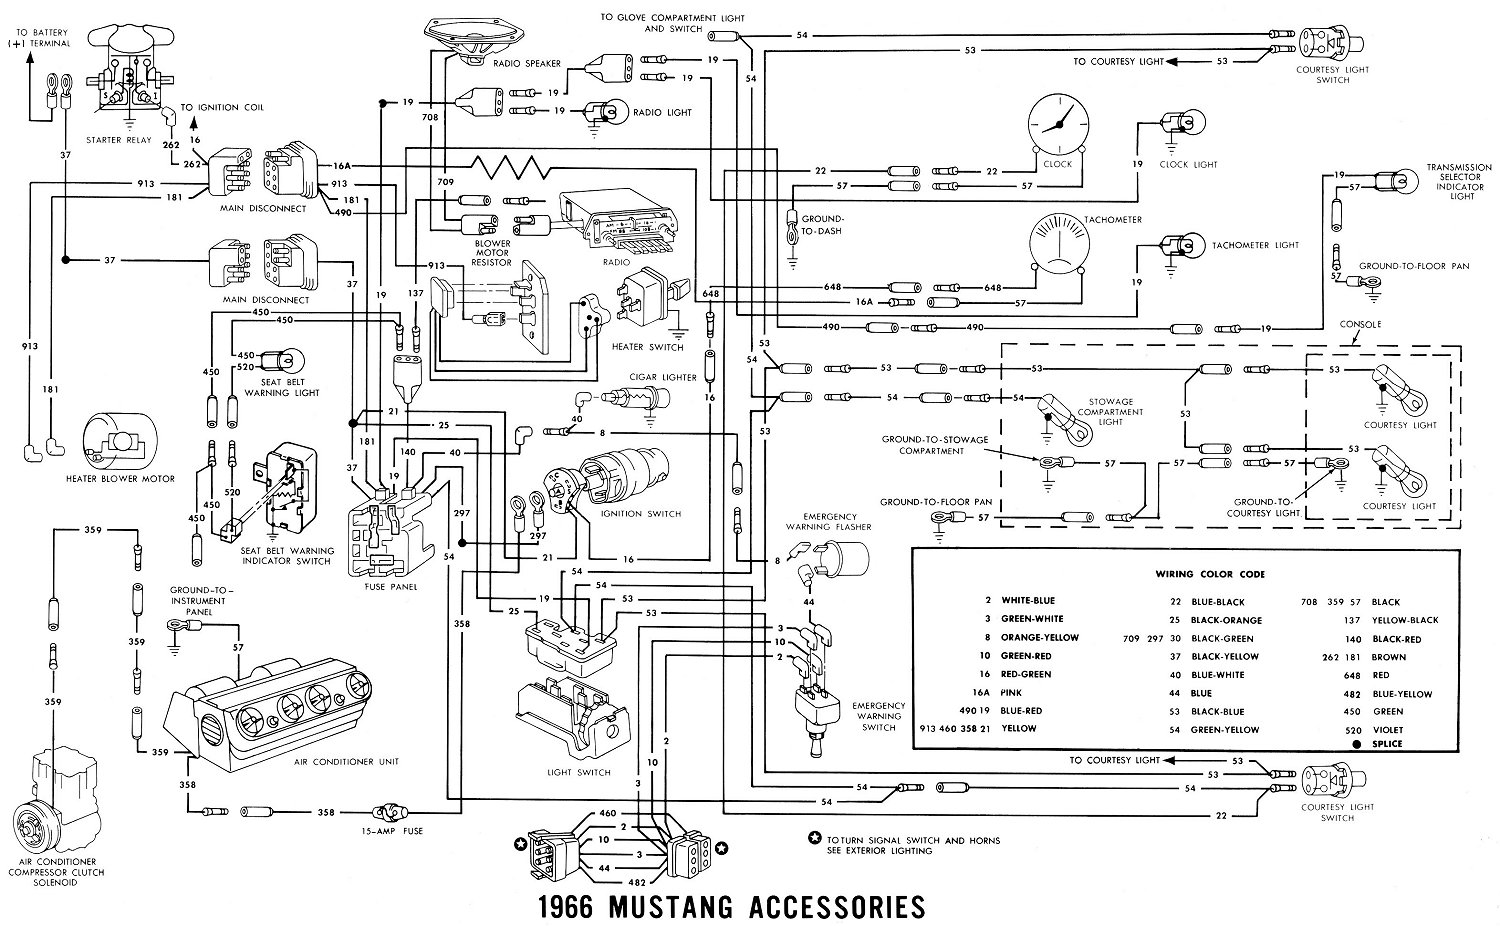 1966 mustang wiring diagram pdf learn wiring diagram effectively u2022 rh thegadgetgurus co